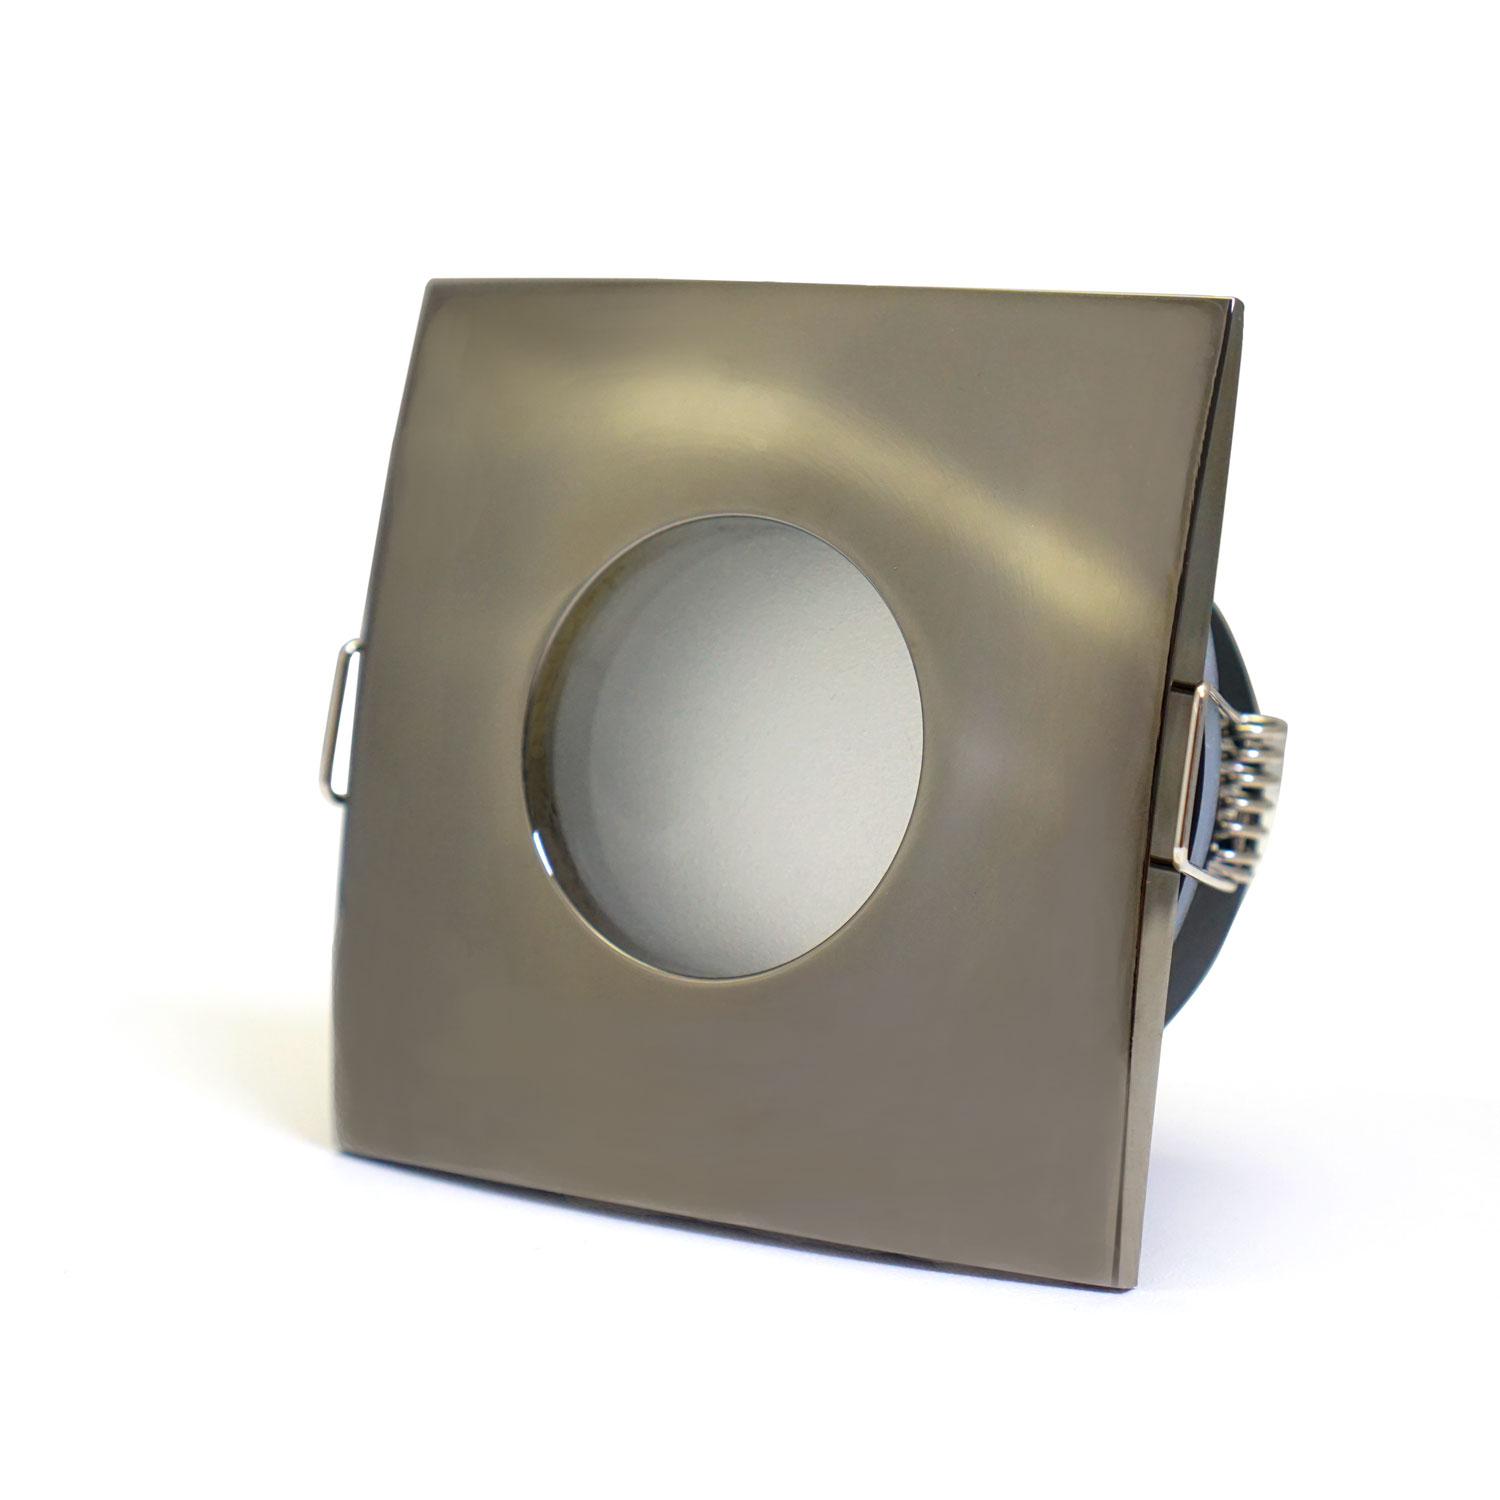 the latest ea311 70ebd Bathroom Square Downlight IP44 Waterproof Rated Spotlight GU10 Black Chrome  (008A16-BC) by www.ukew.co.uk